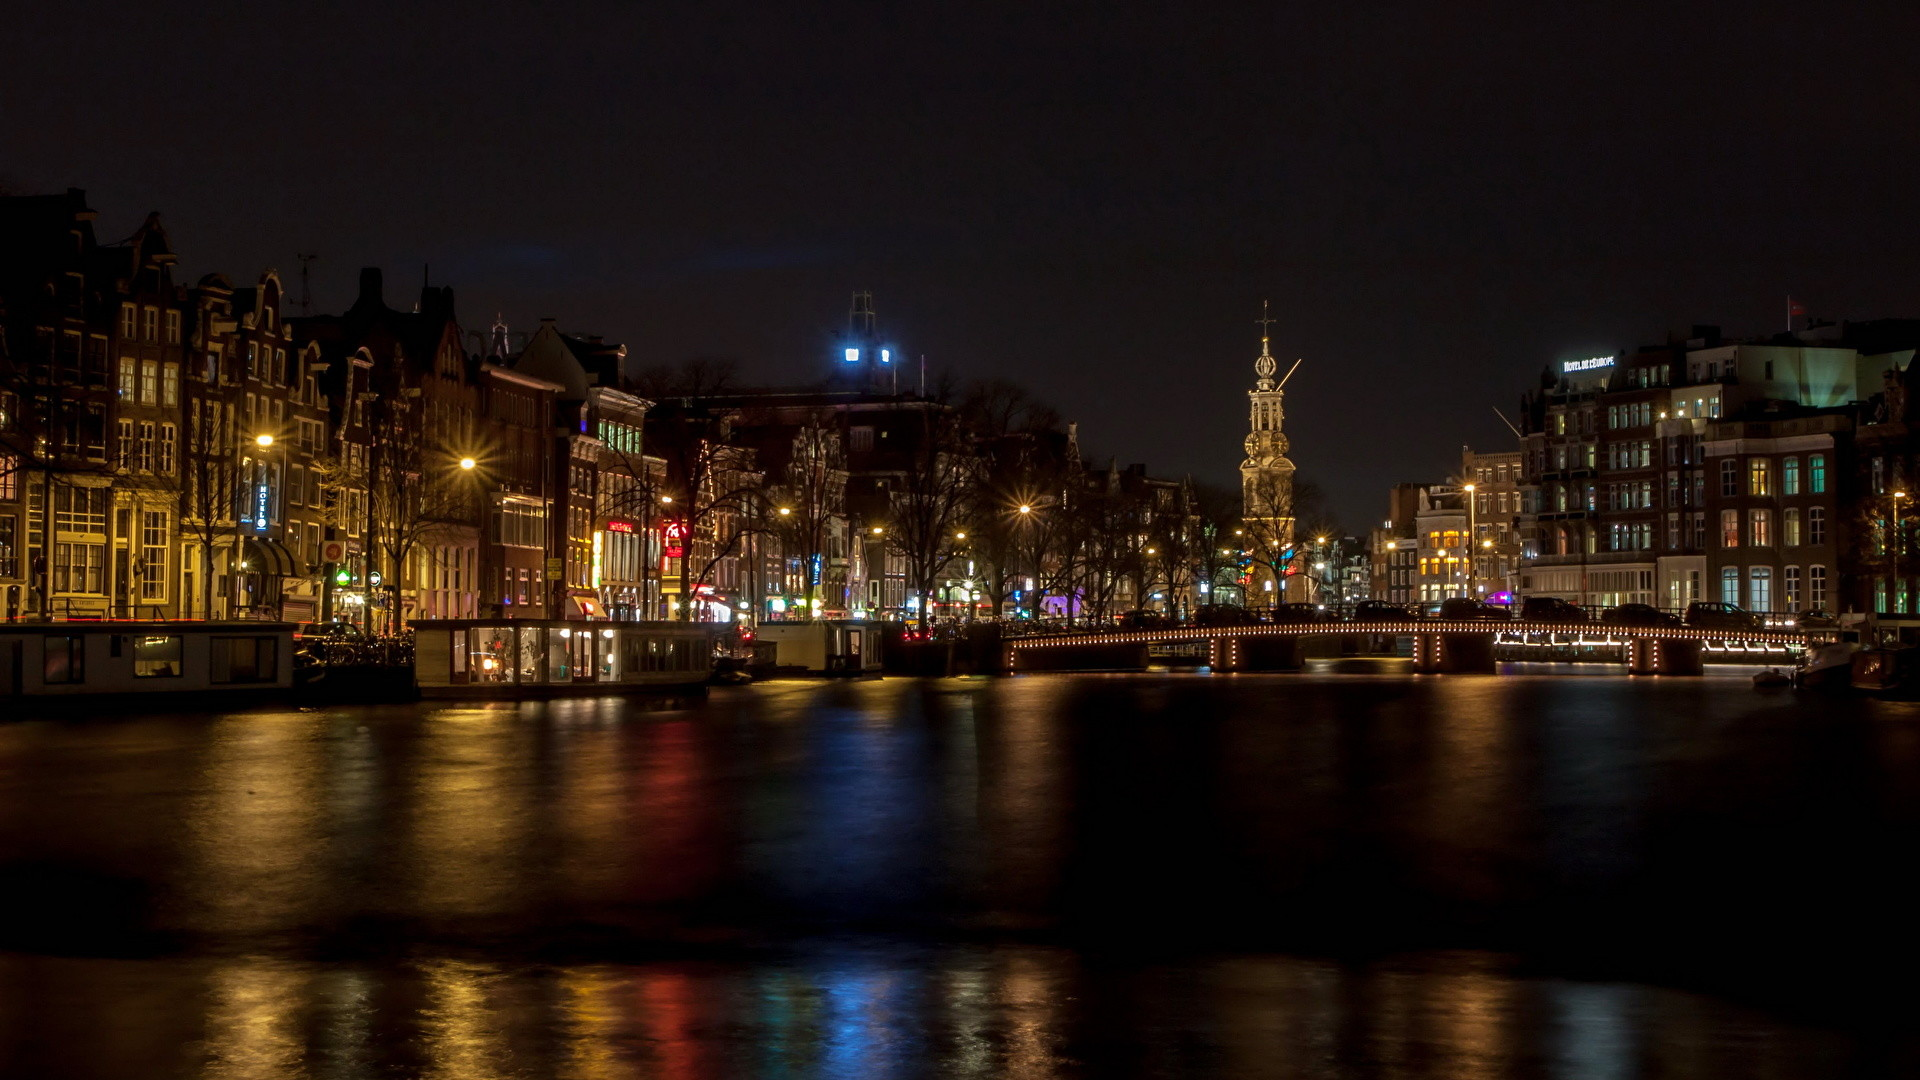 Wallpaper Amsterdam Netherlands Rivers night time Cities Building  Night Houses